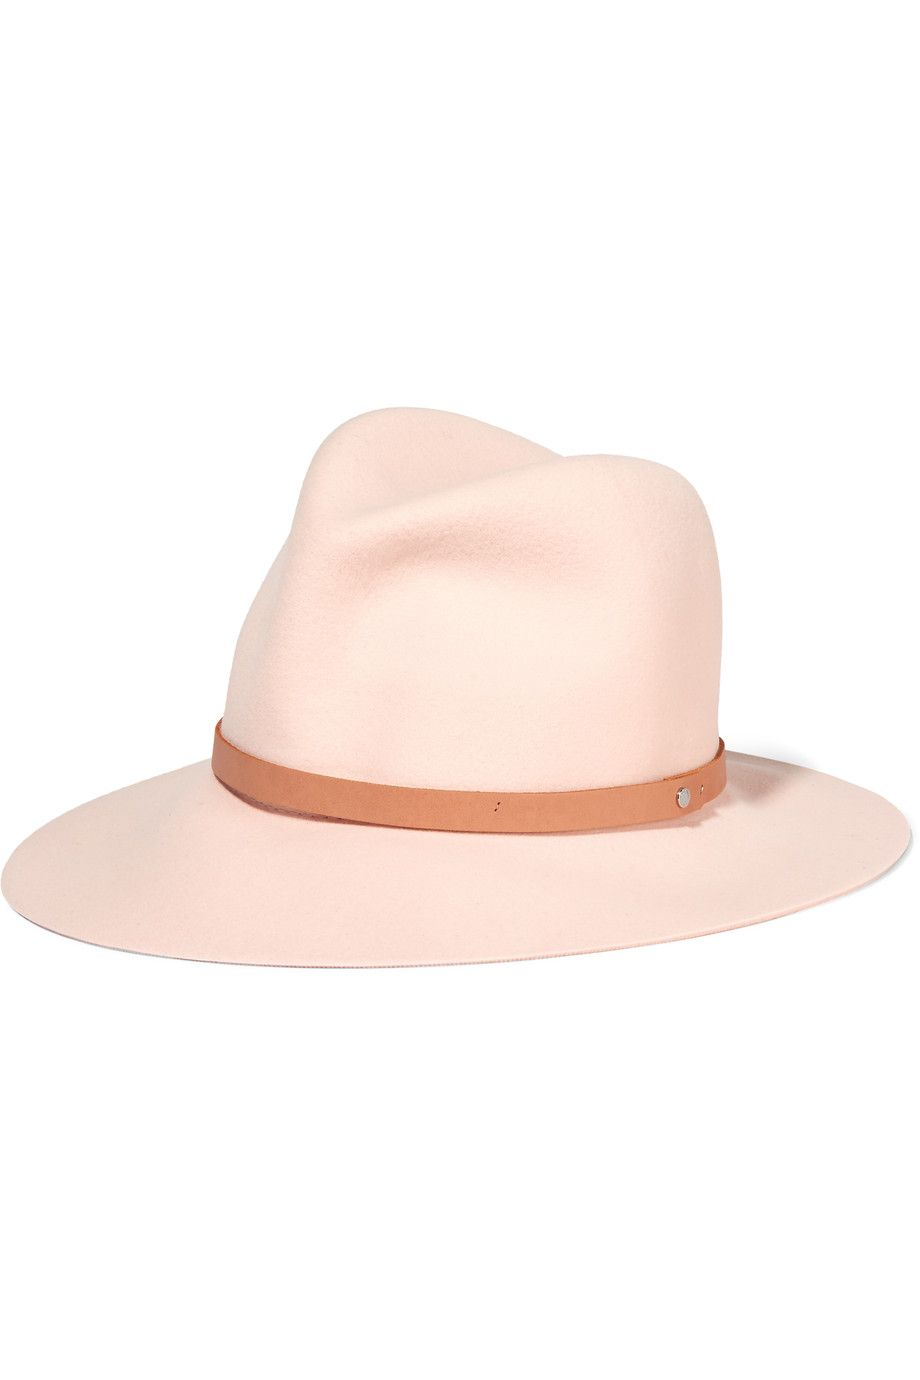 Shop on-sale Rag   bone Wool-felt fedora. Browse other discount designer  Hats   more on The Most Fashionable Fashion Outlet 782e4d1364de